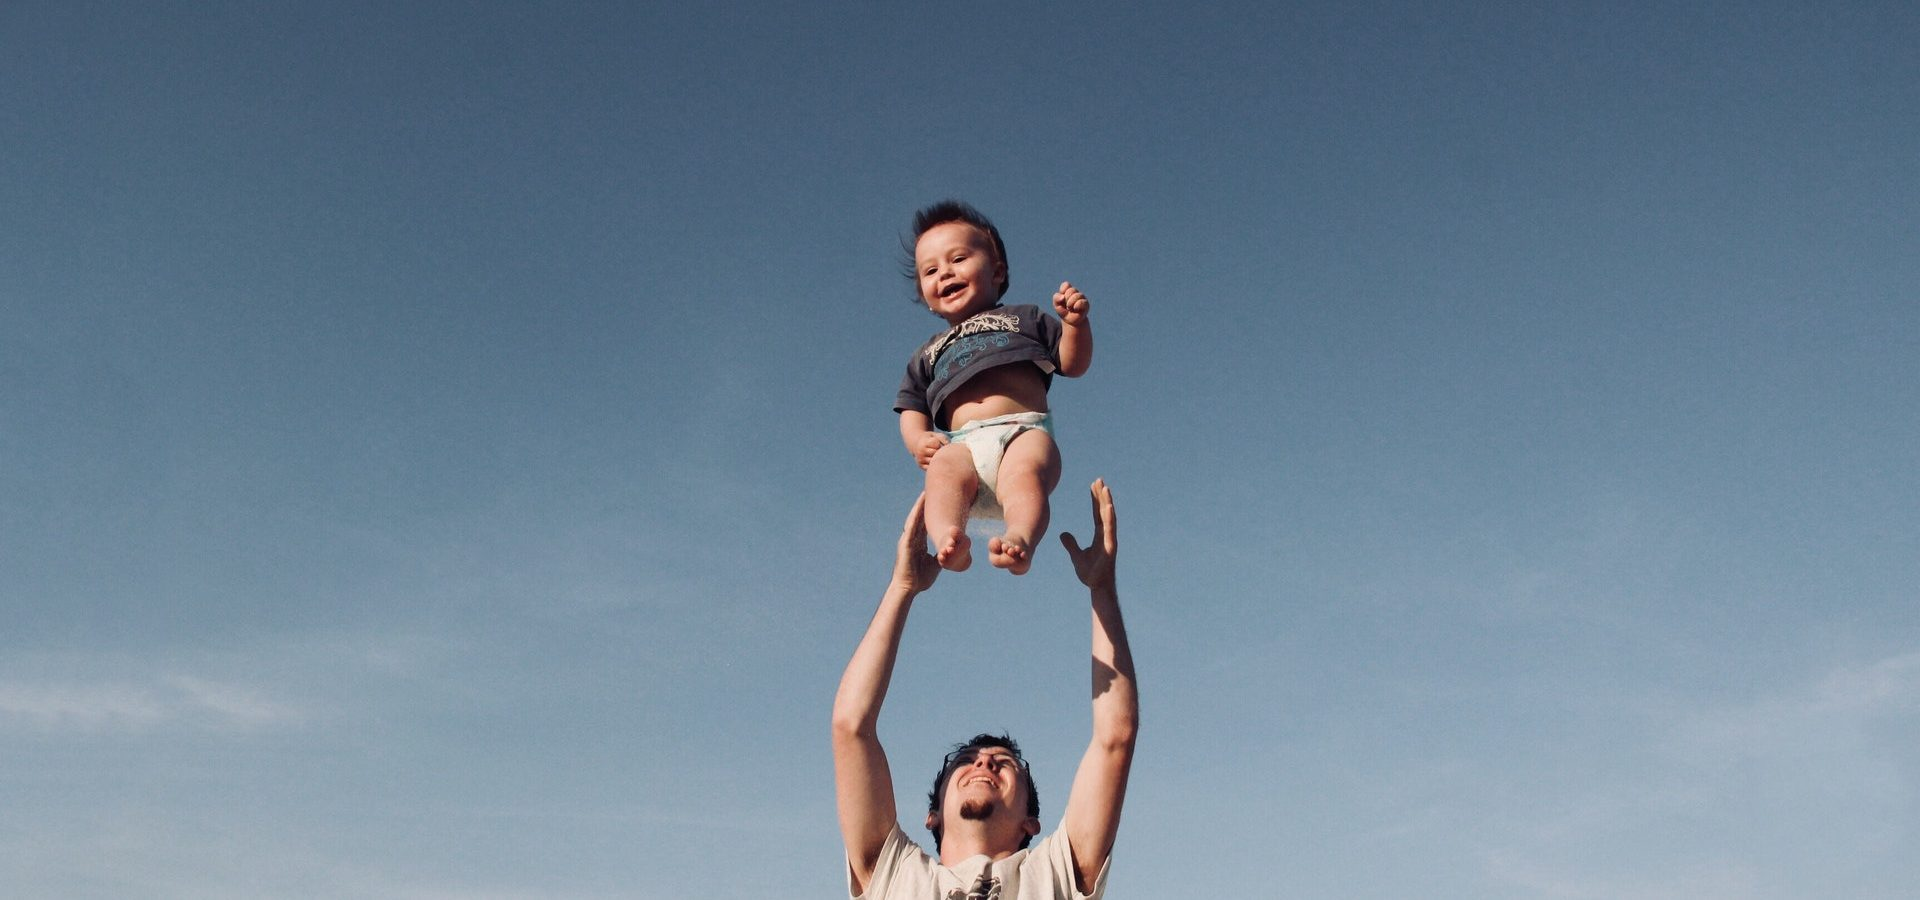 Dad raising his son in the air on a sunny day